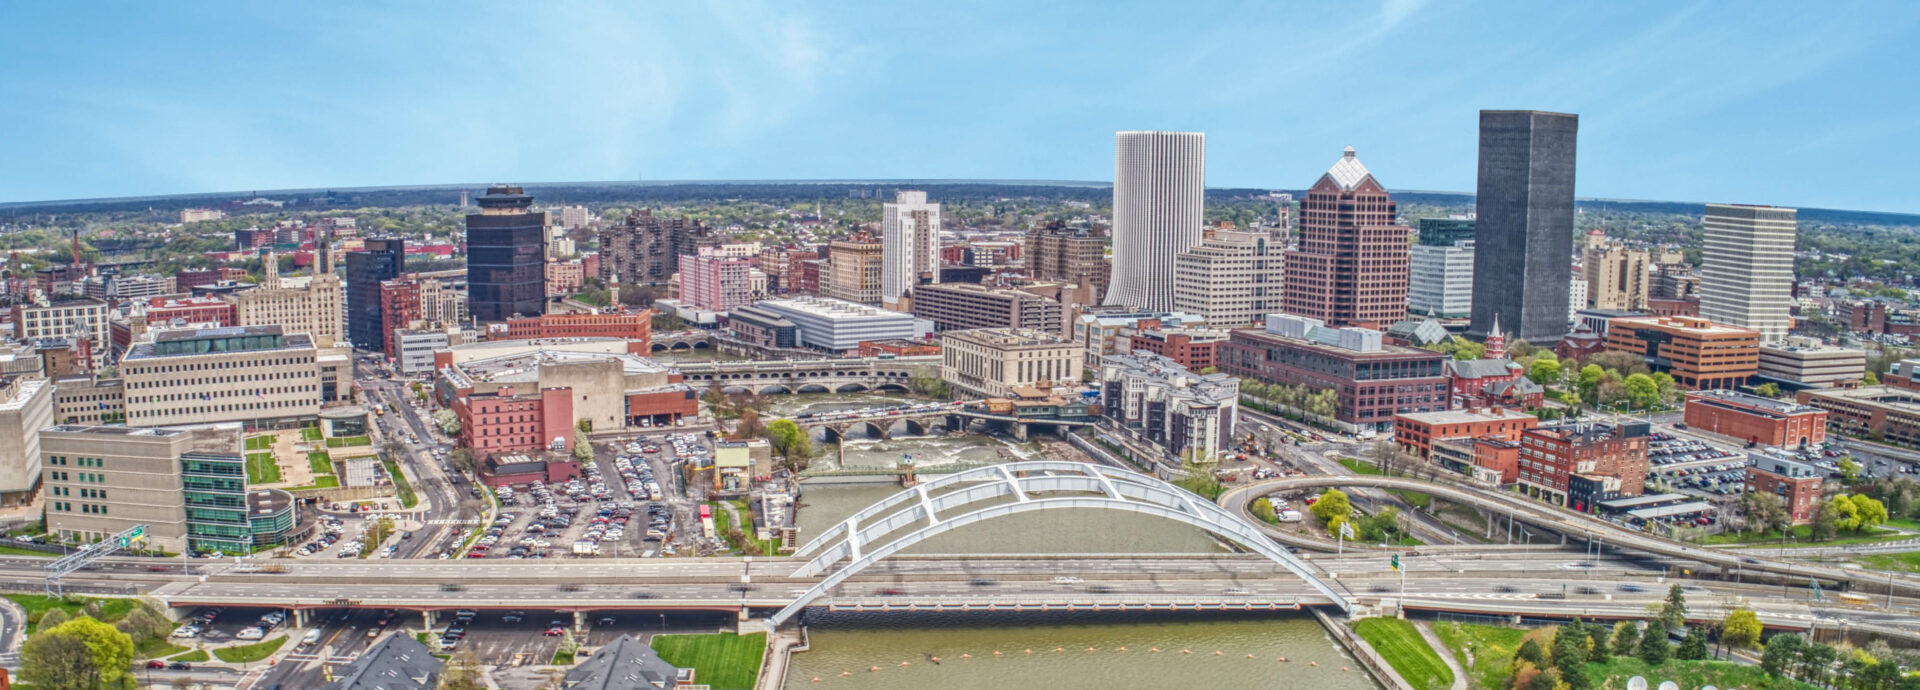 Aerial photo of downtown Rochester